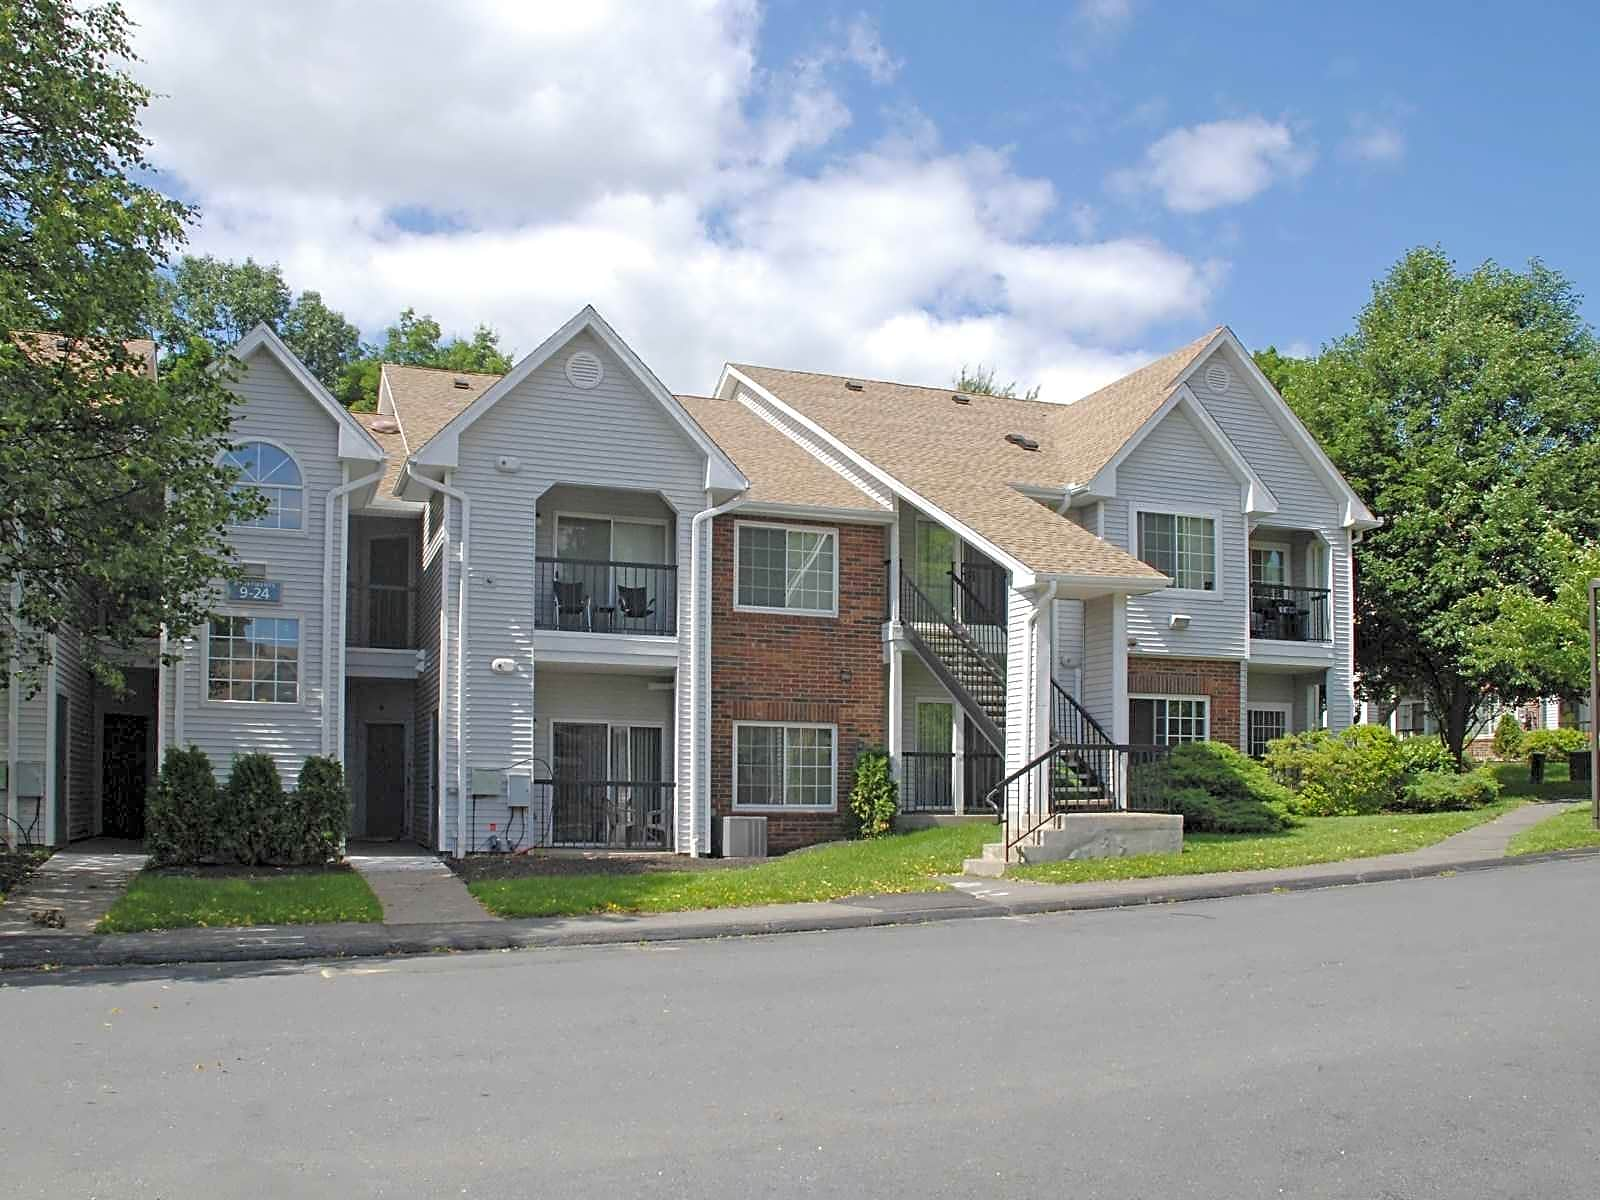 Apartments And Houses For Rent Near Me In Hartford Ct